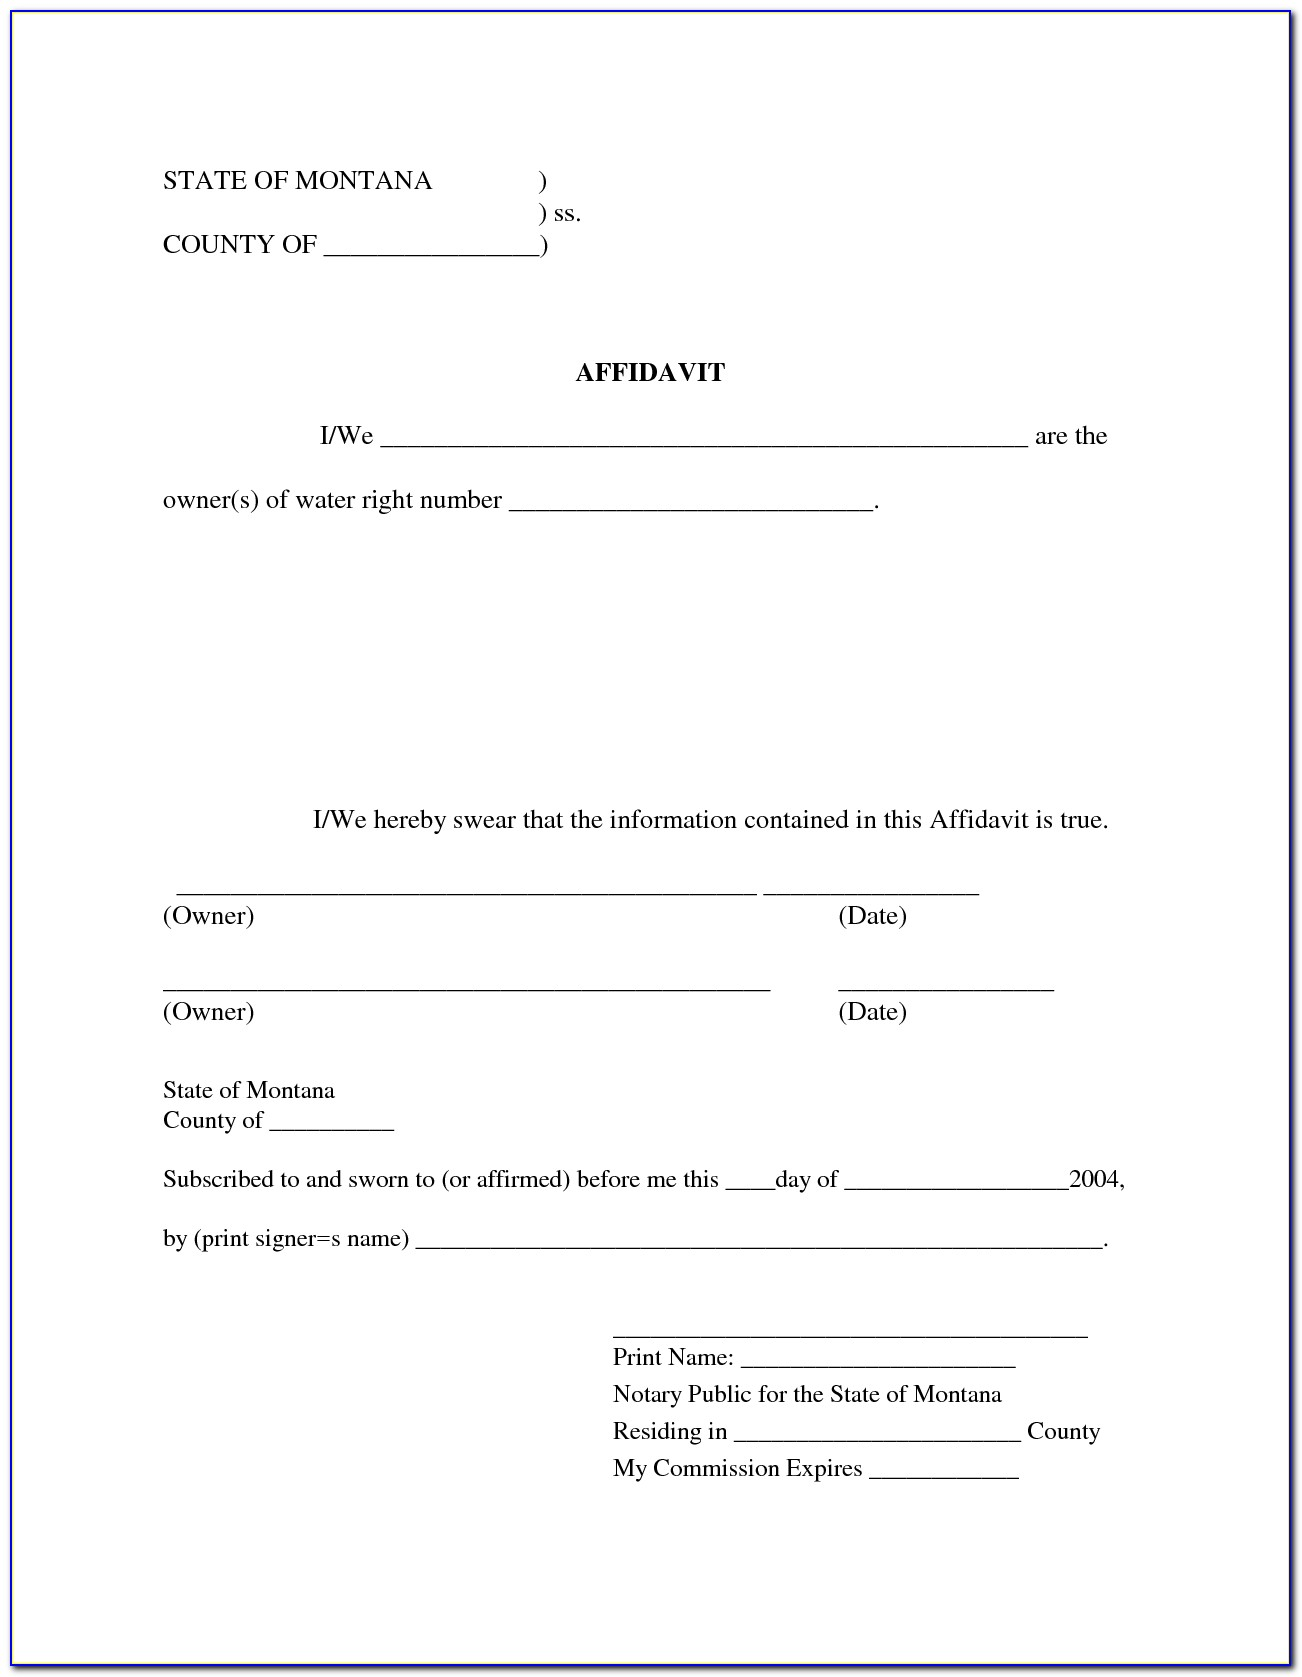 Affidavit Template South Africa Free